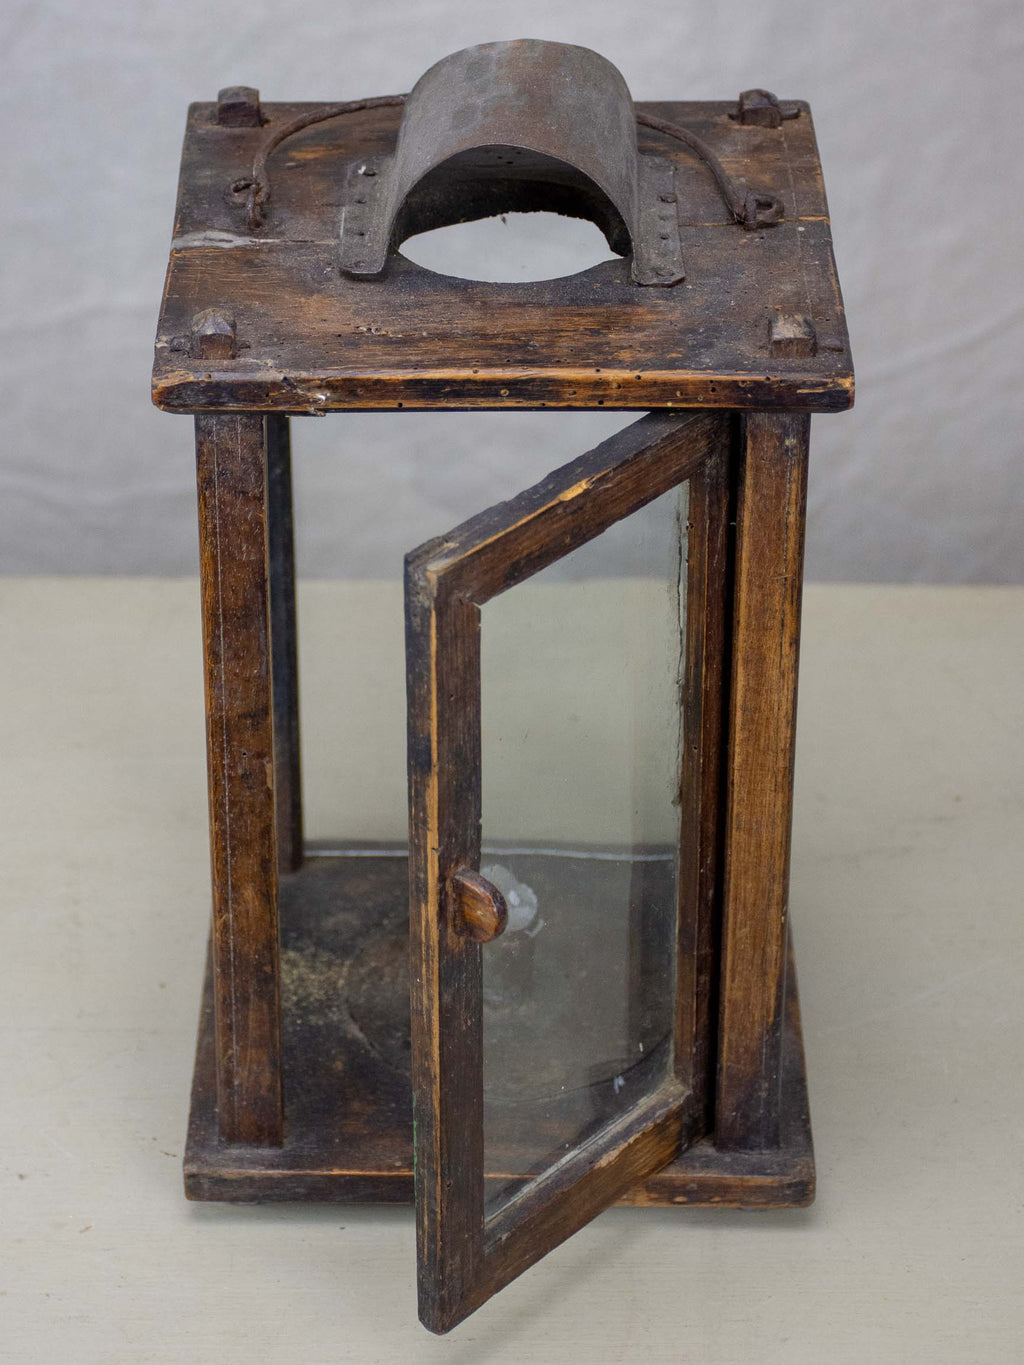 Antique French miner's lantern